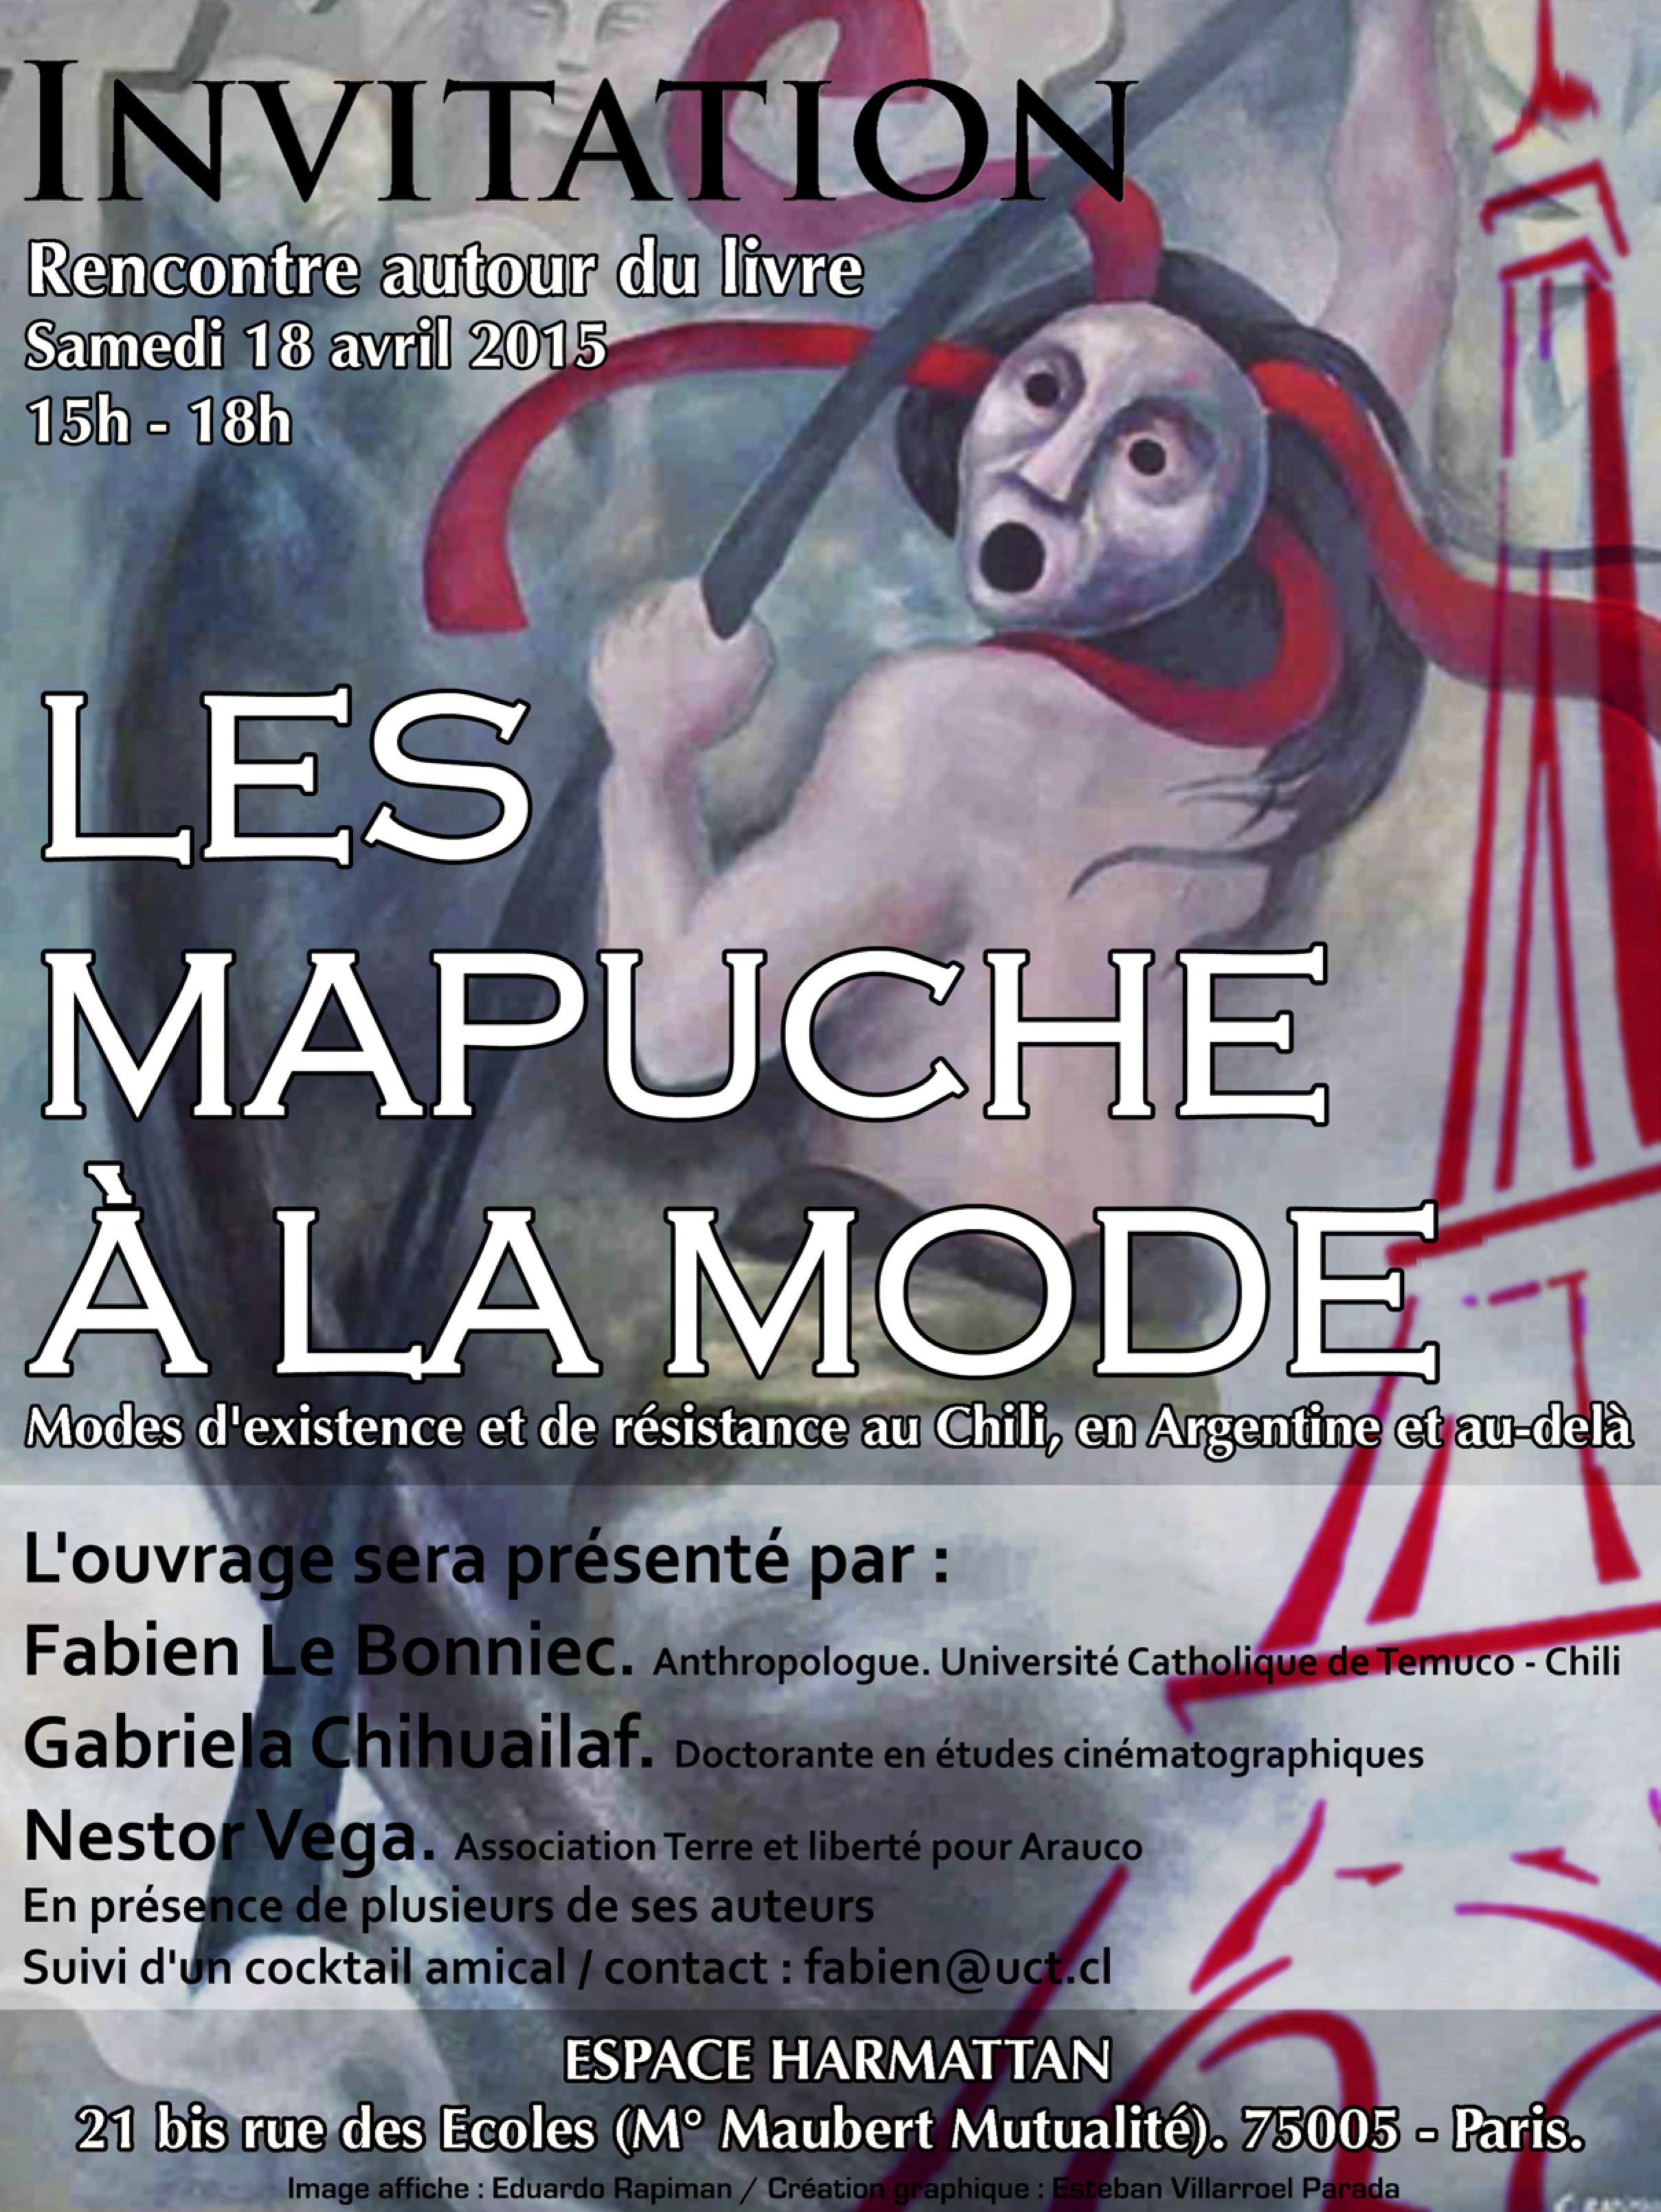 Invitation Les Mapuche a la mode - 18 avril